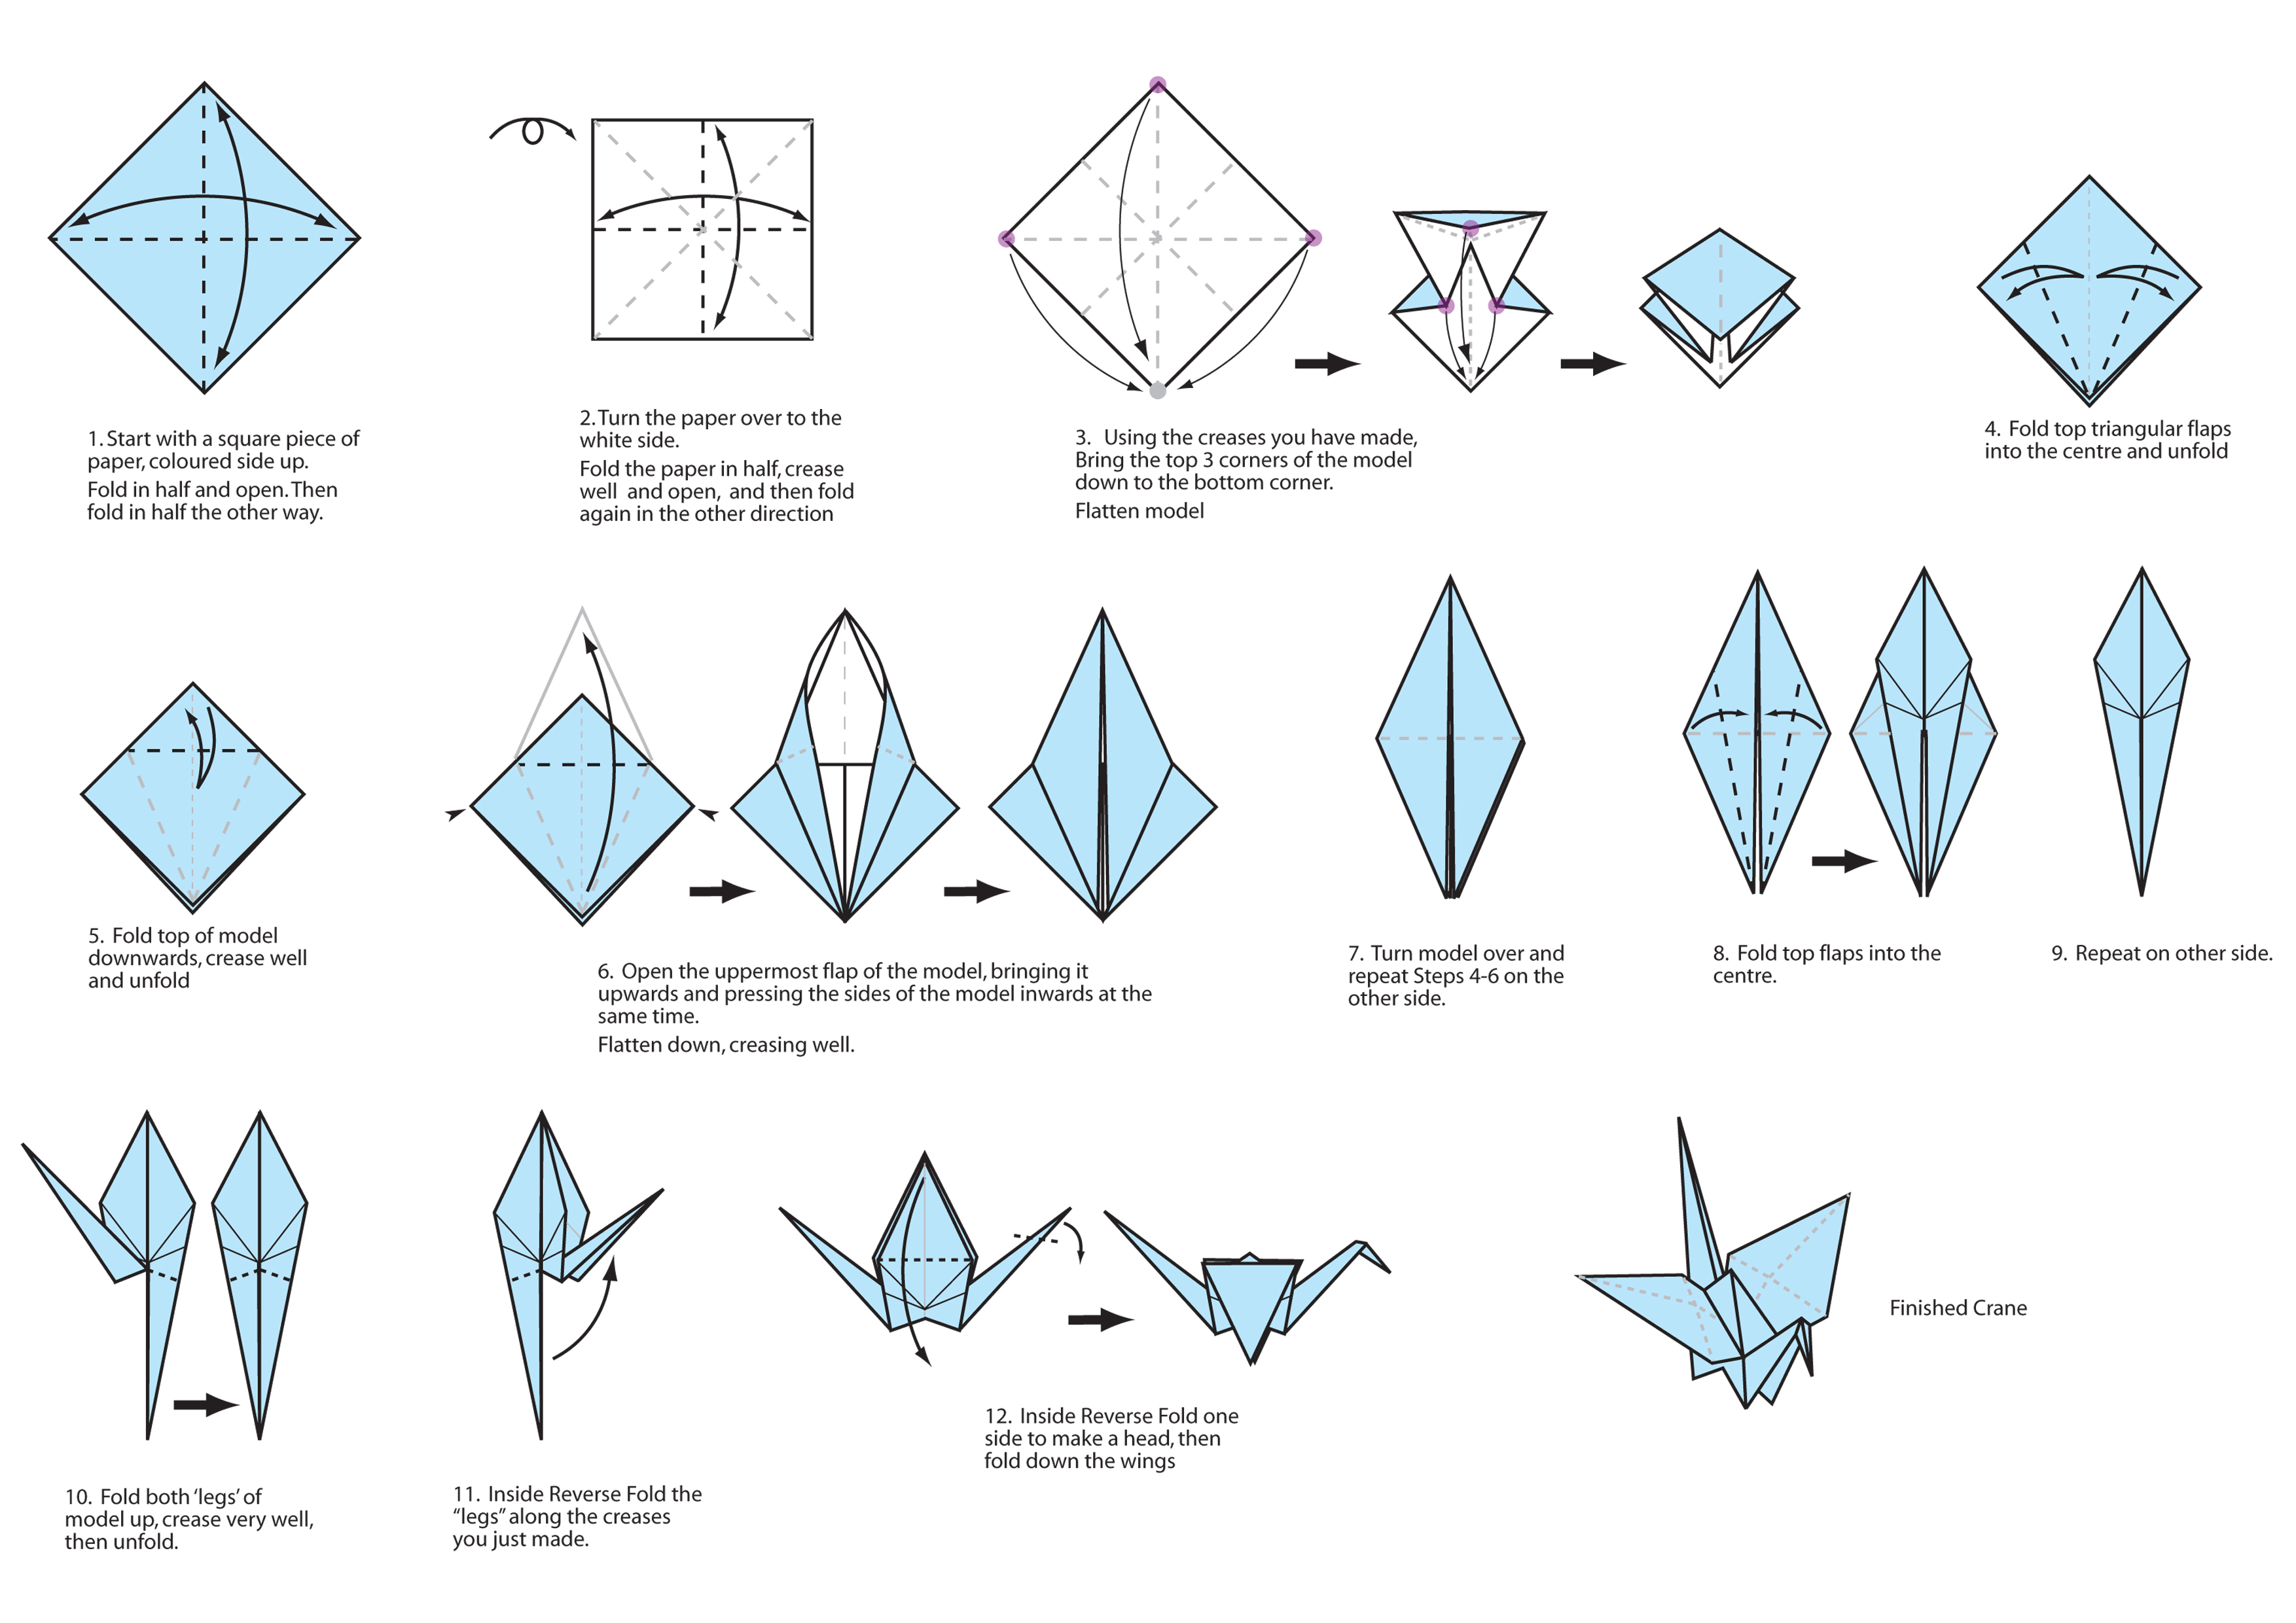 Guide on How to Create a Colorful Rainbow DIY Crane Curtain [Detailed Instructions] homesthetics (9)